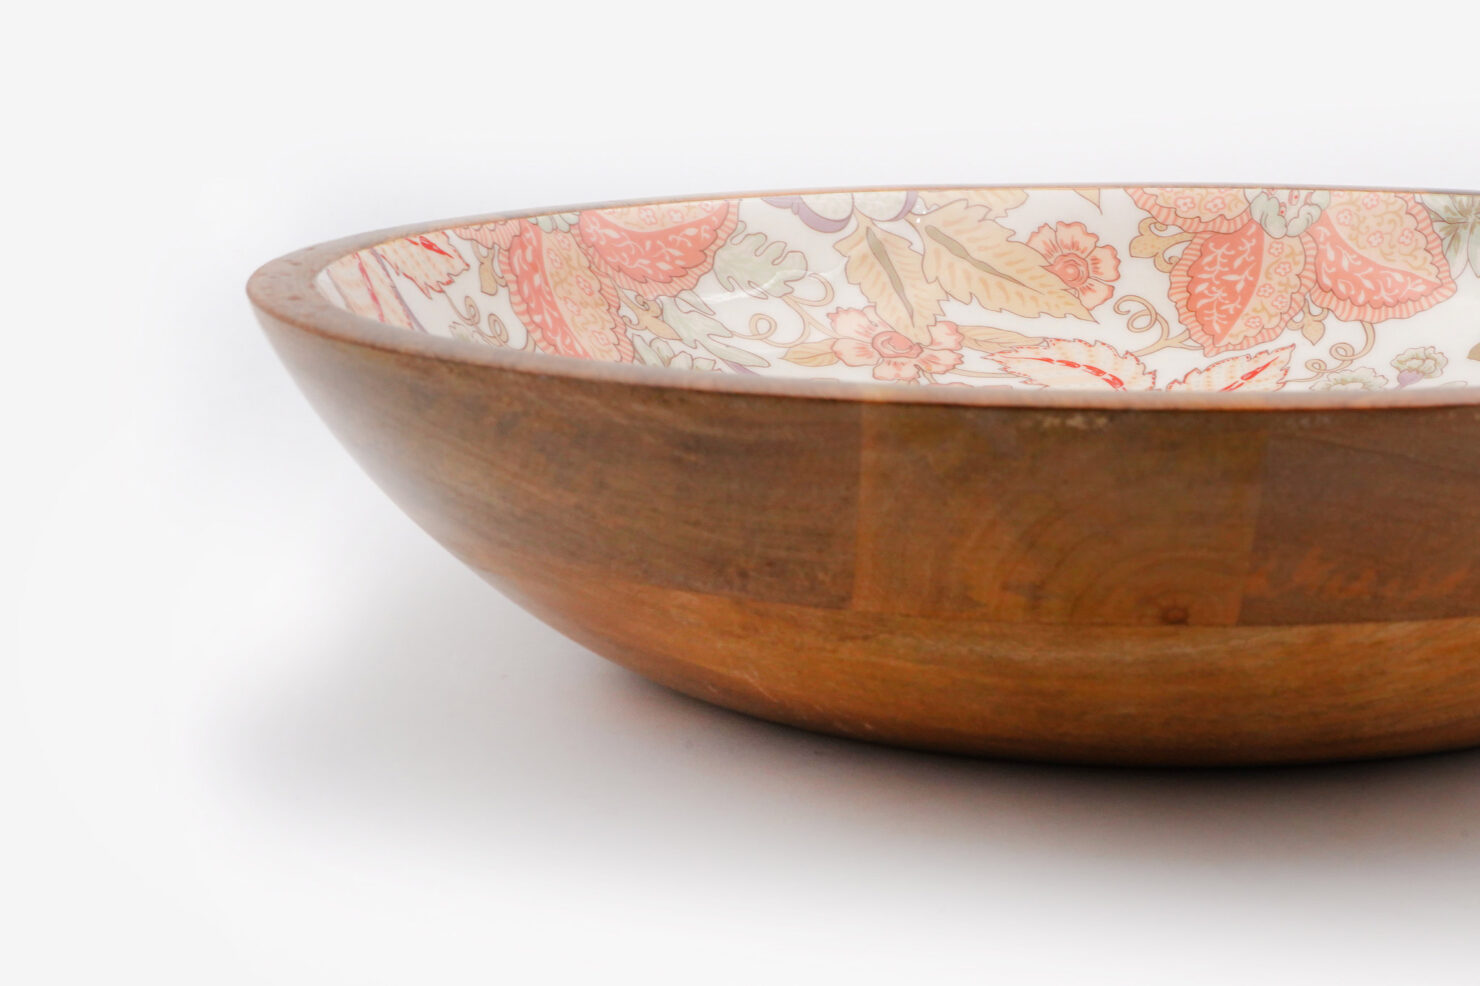 BOWL ORANGE FLOWER MANGO WOOD 38 CM - BY ROOM